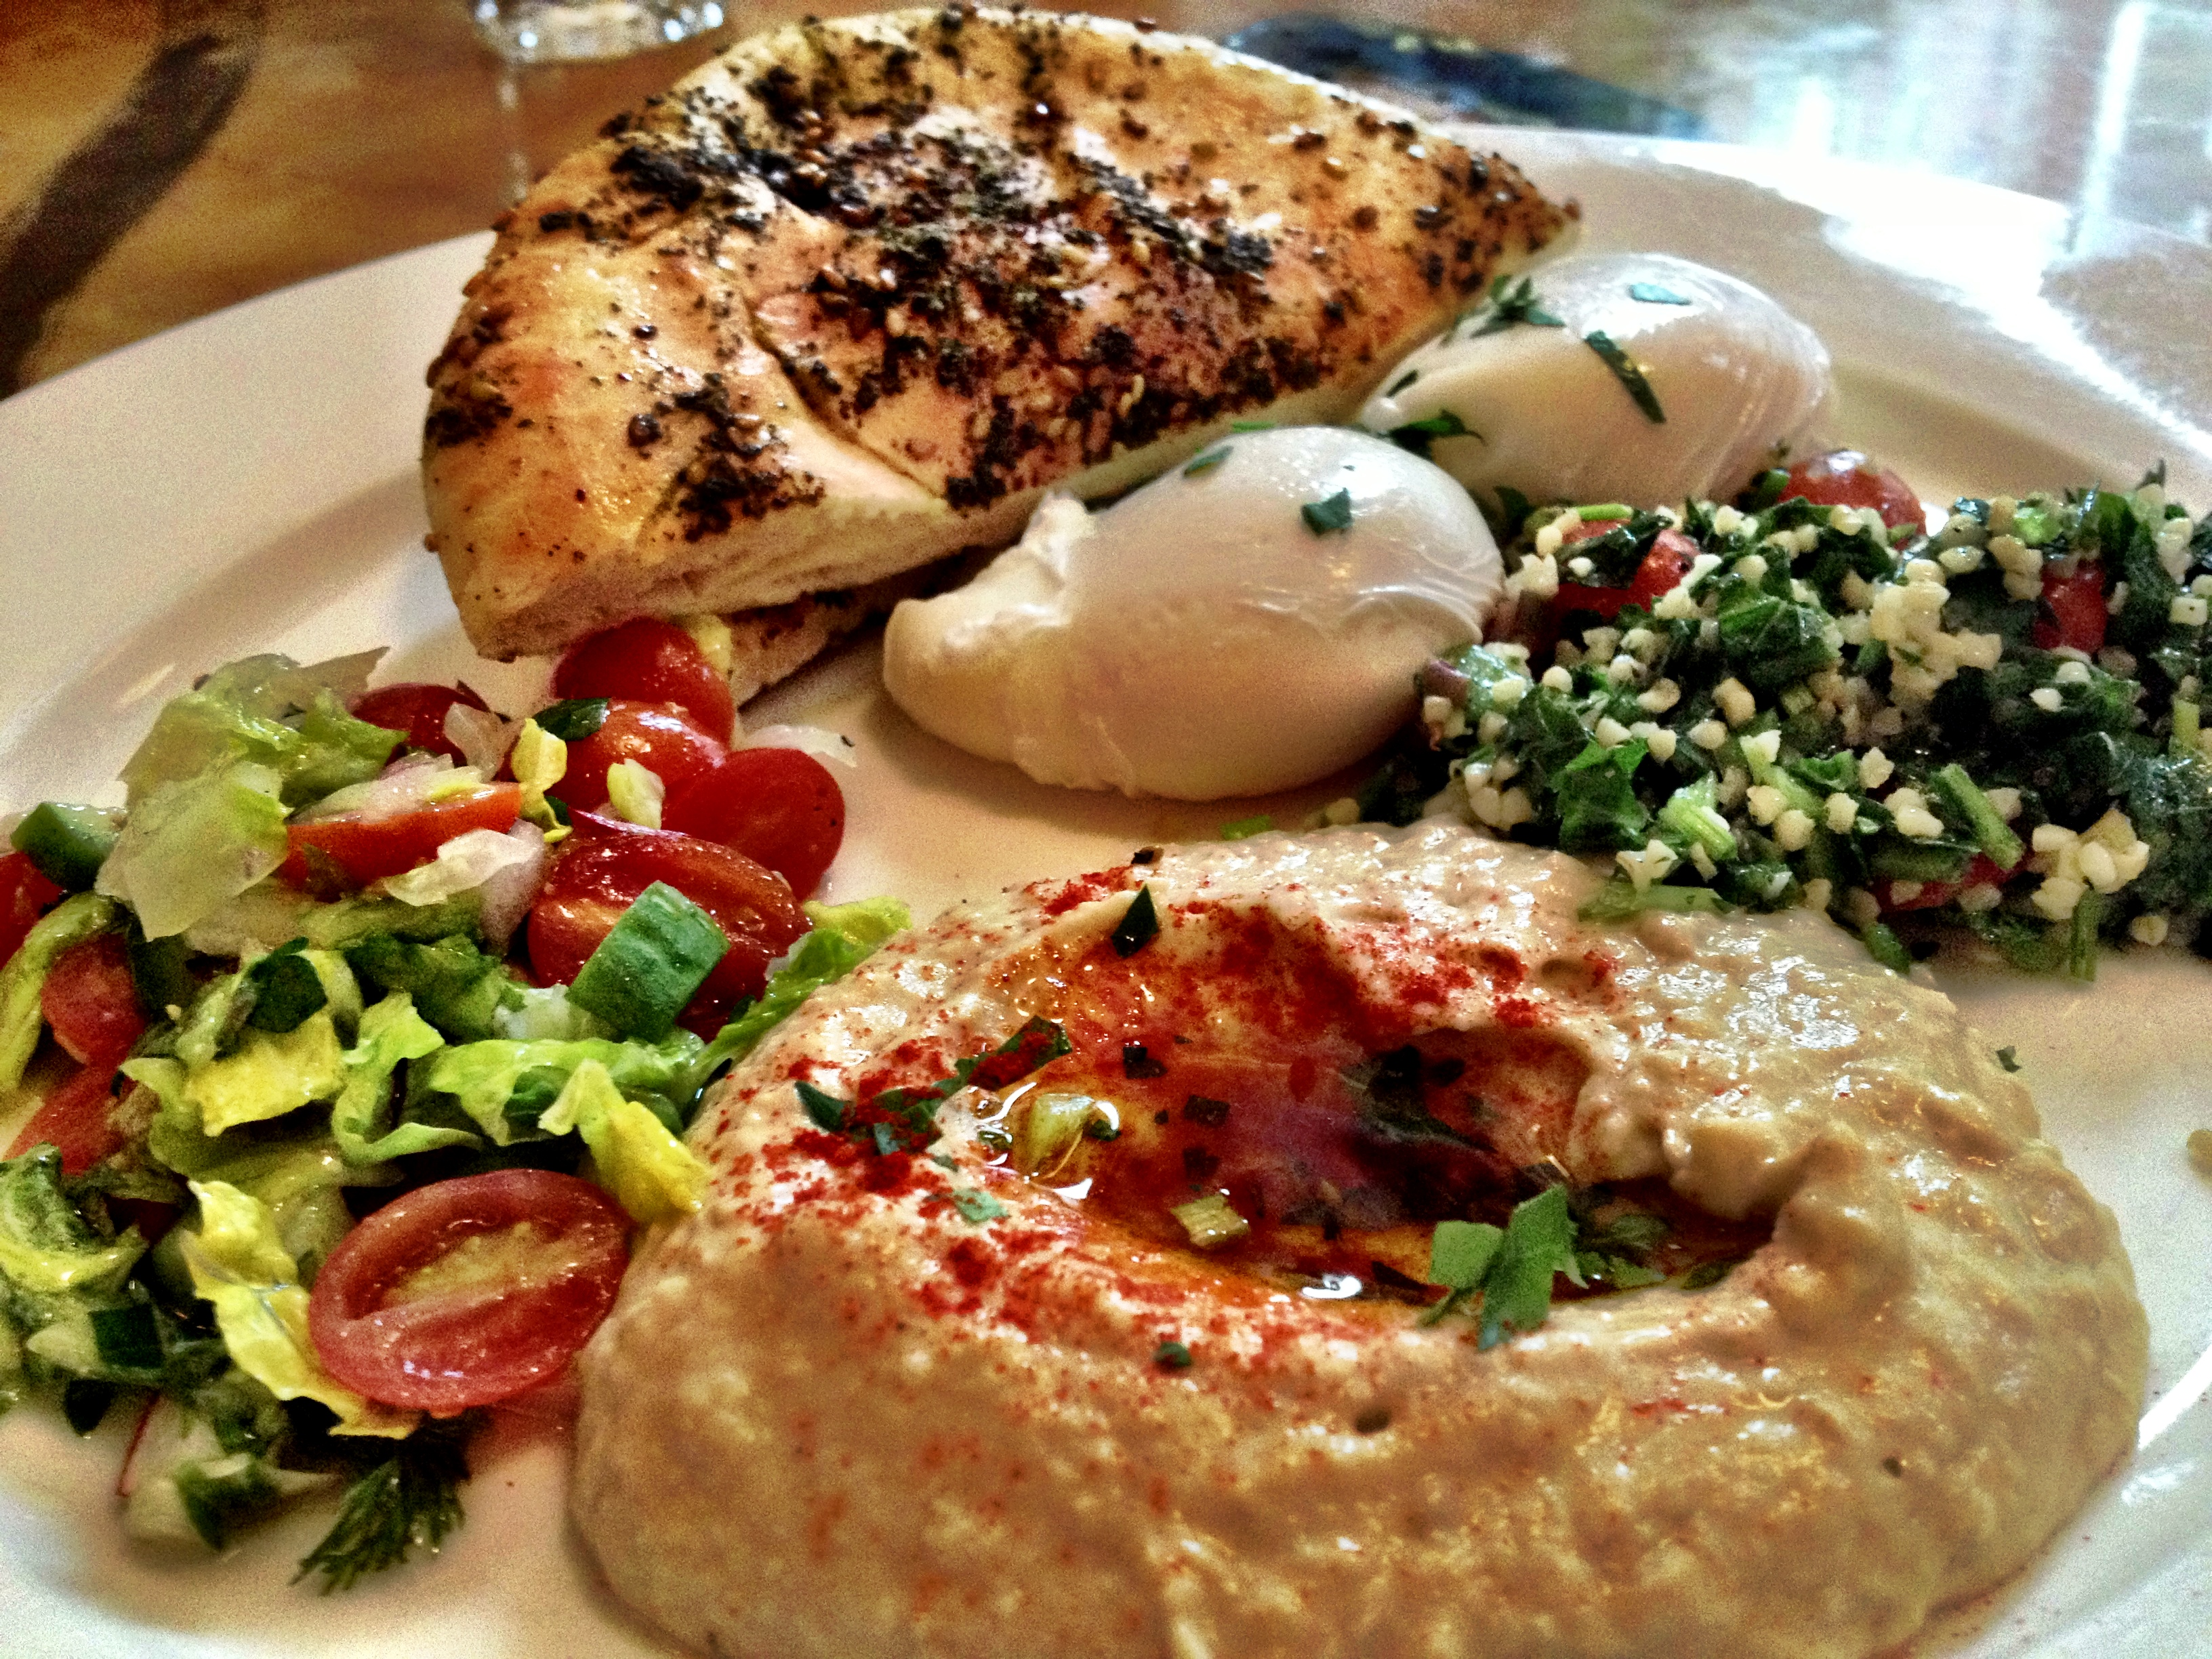 cafe mogadore, middle eastern breakfast, east village, st marks place, the local, greg mchale,